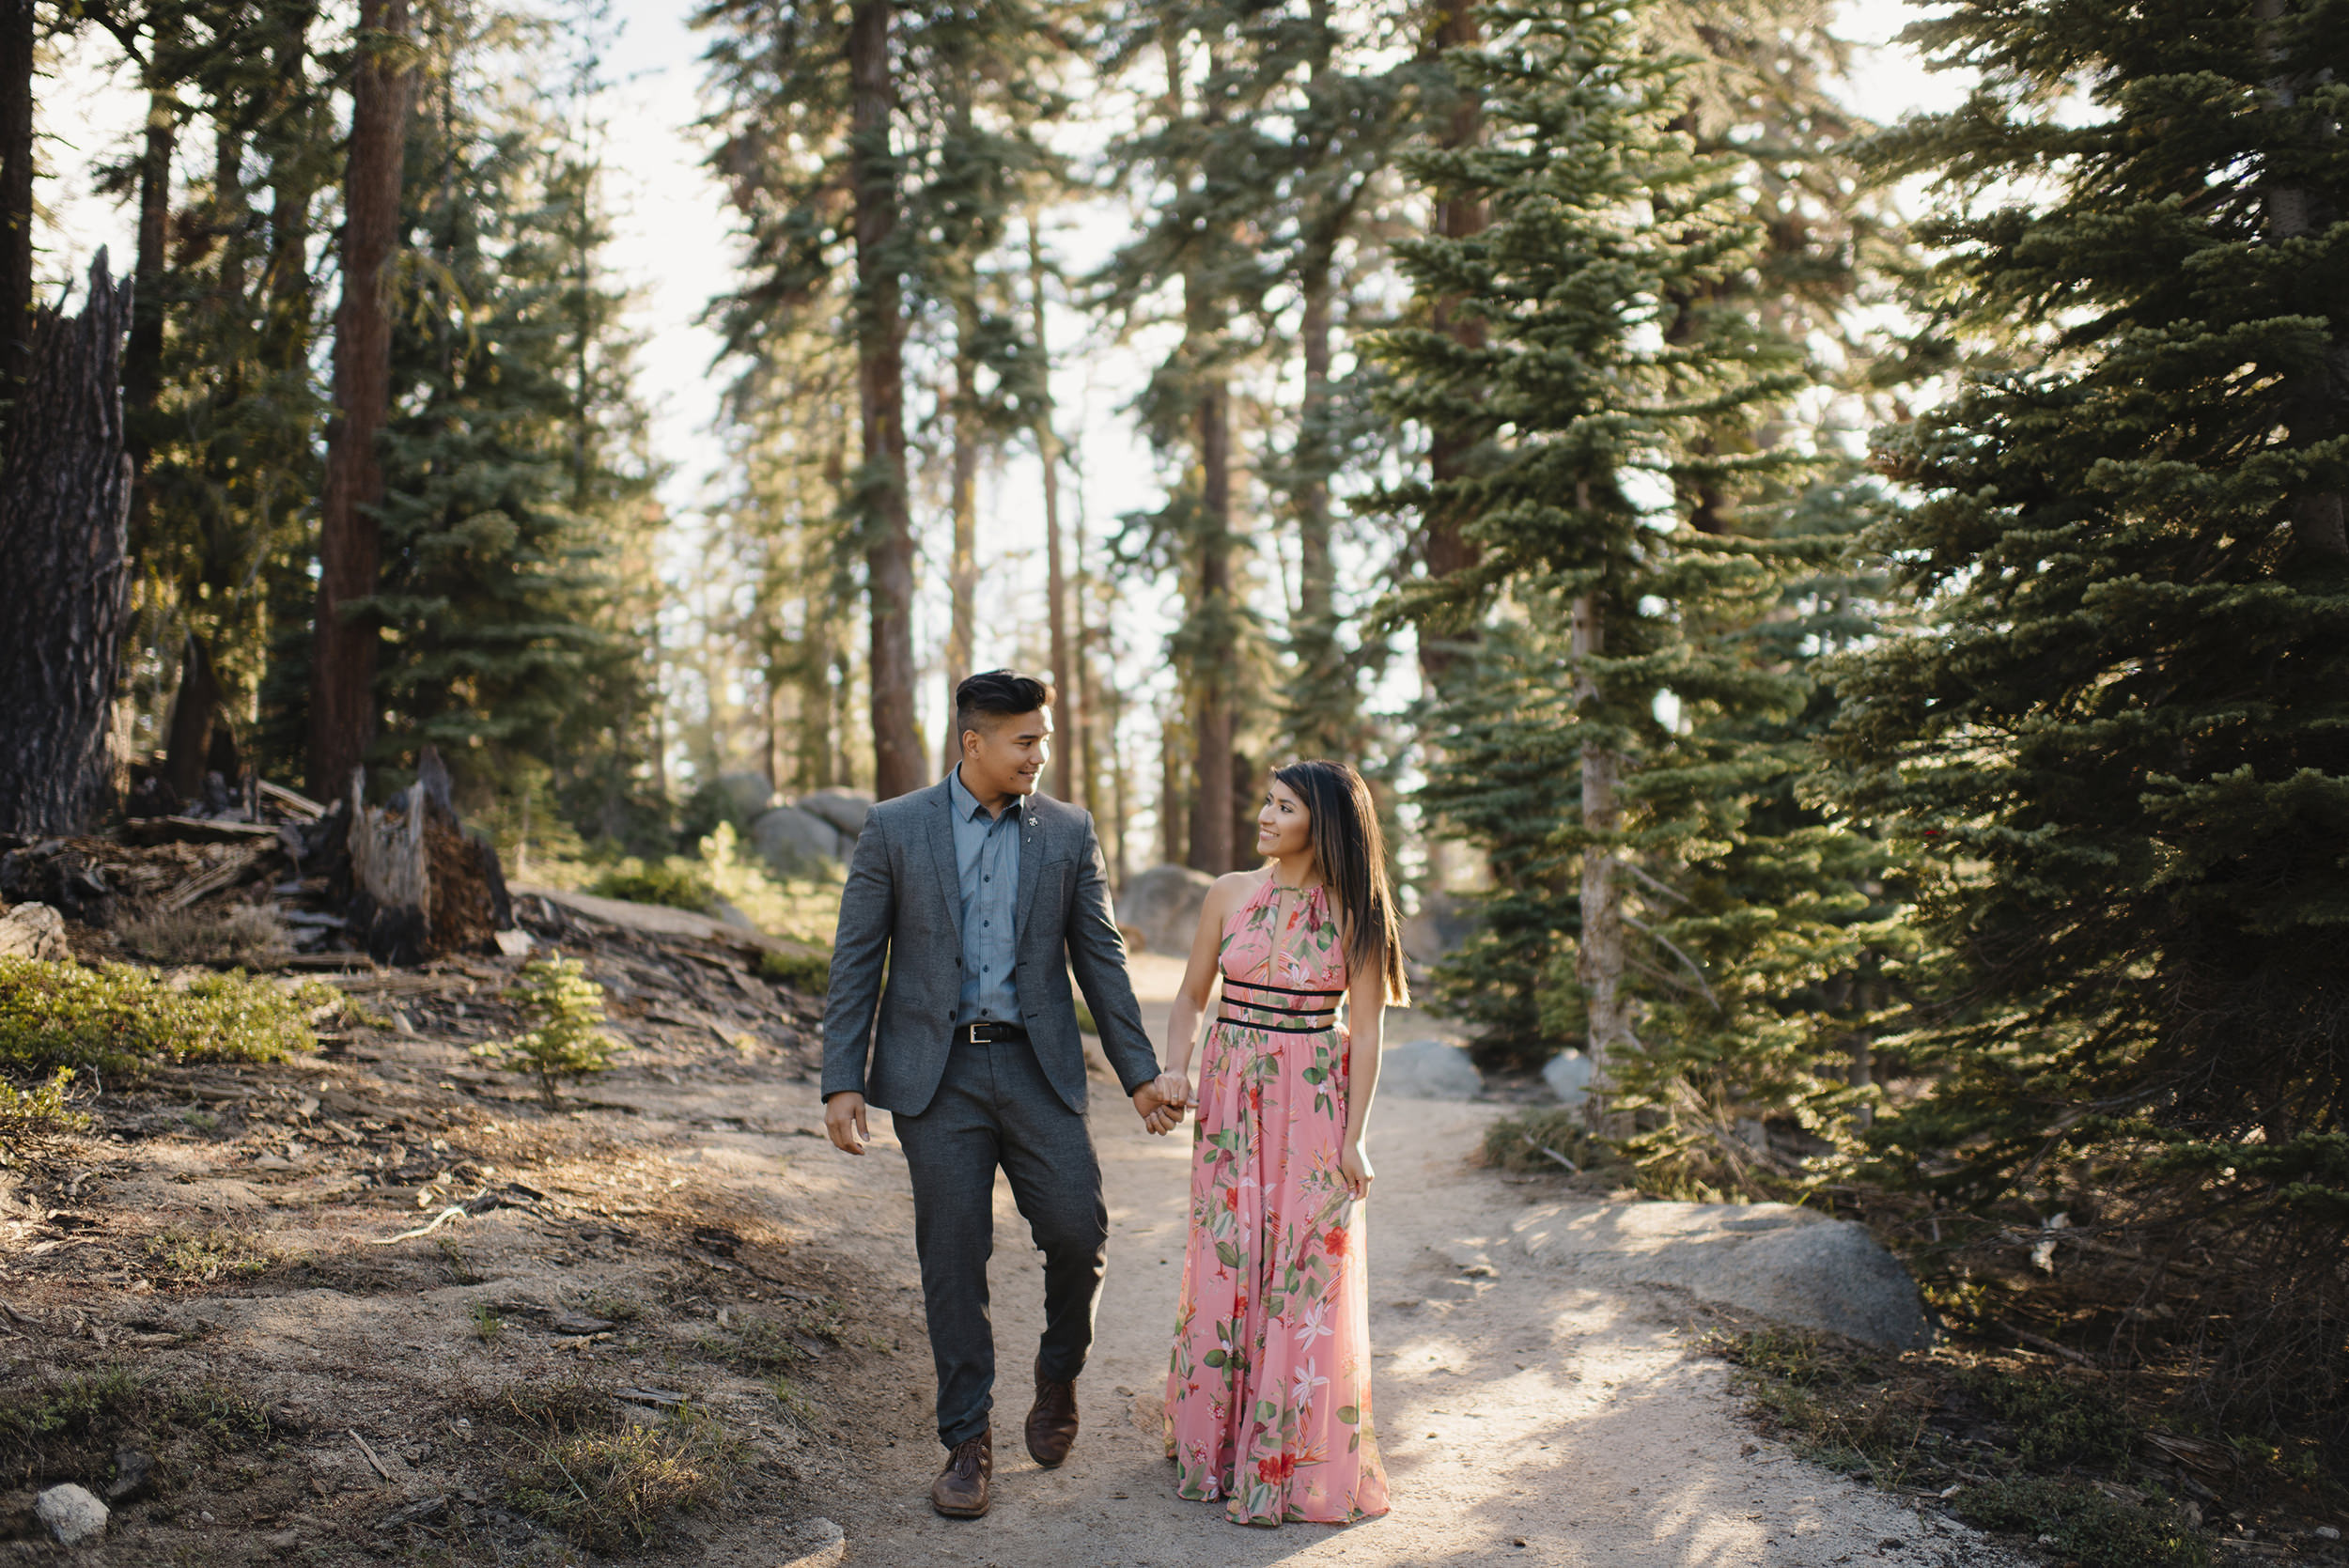 Couple walks holding hands down Taft Point Trail during Engagement Adventure Session by Yosemite Wedding Photographer Colby and Jess.  colbyandjess.com